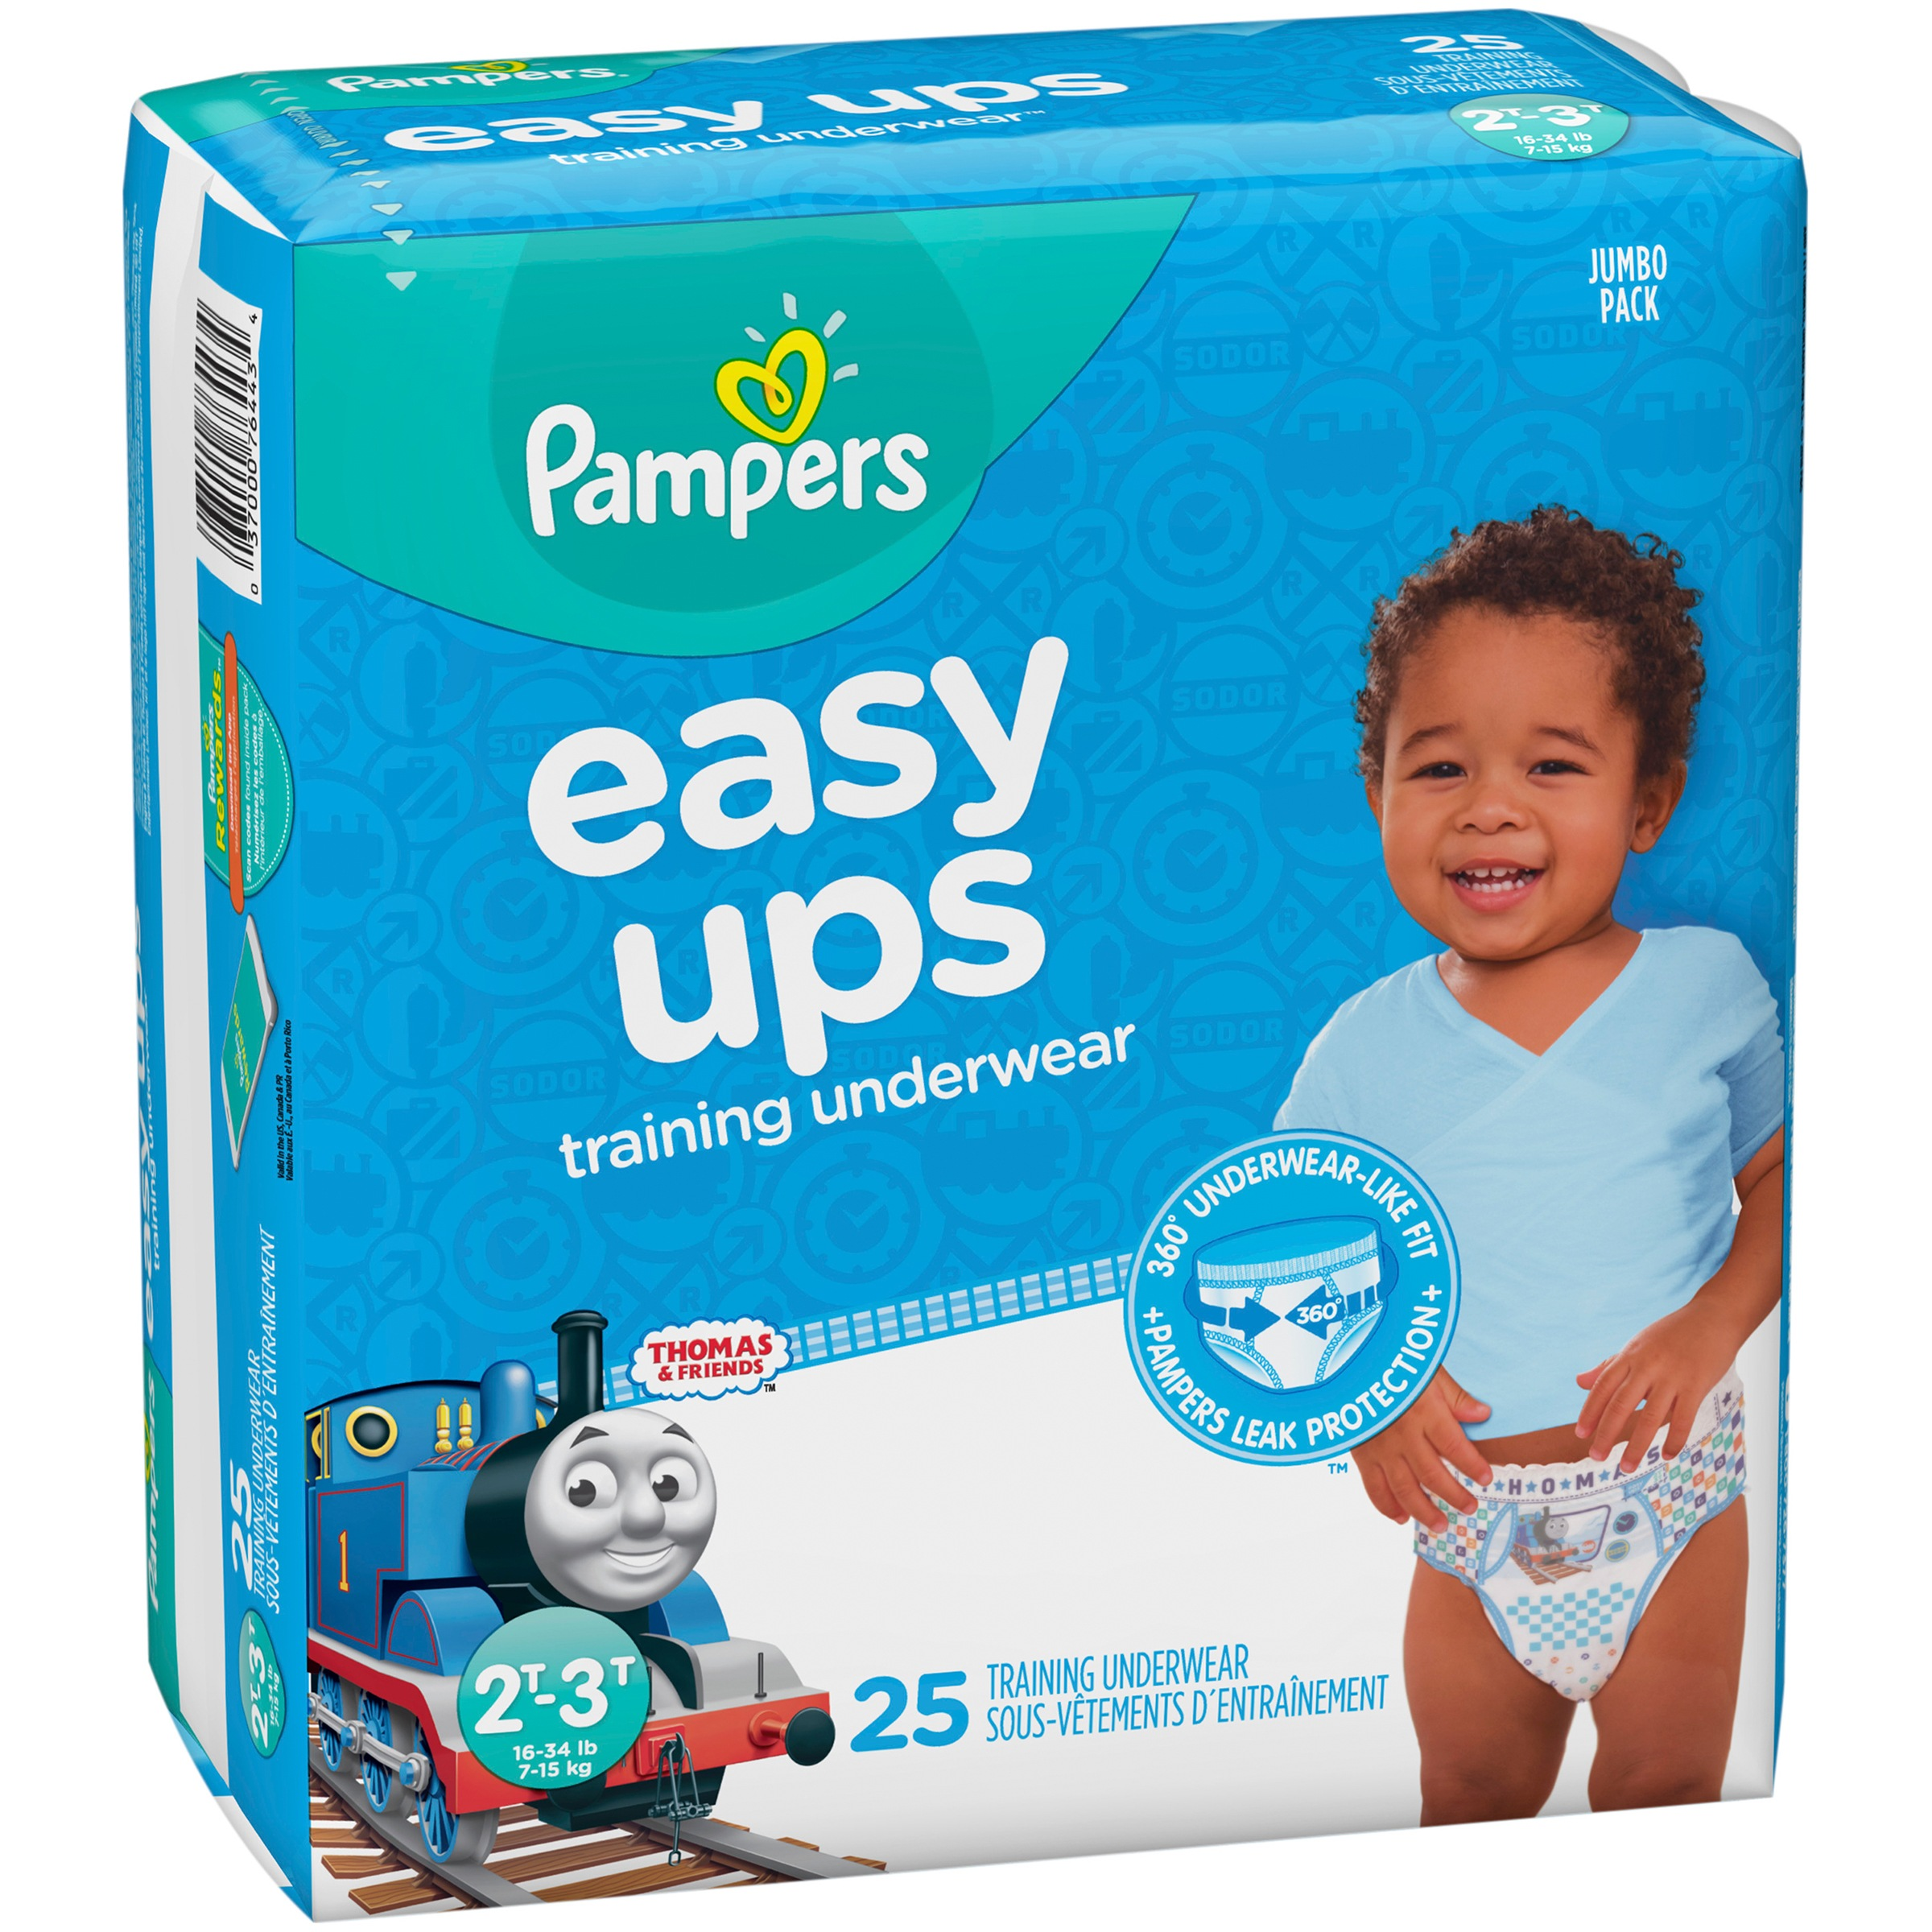 Pampers Easy Ups Thomas & Friends™ Training Underwear Size 2T–3T, 25 Count Pack